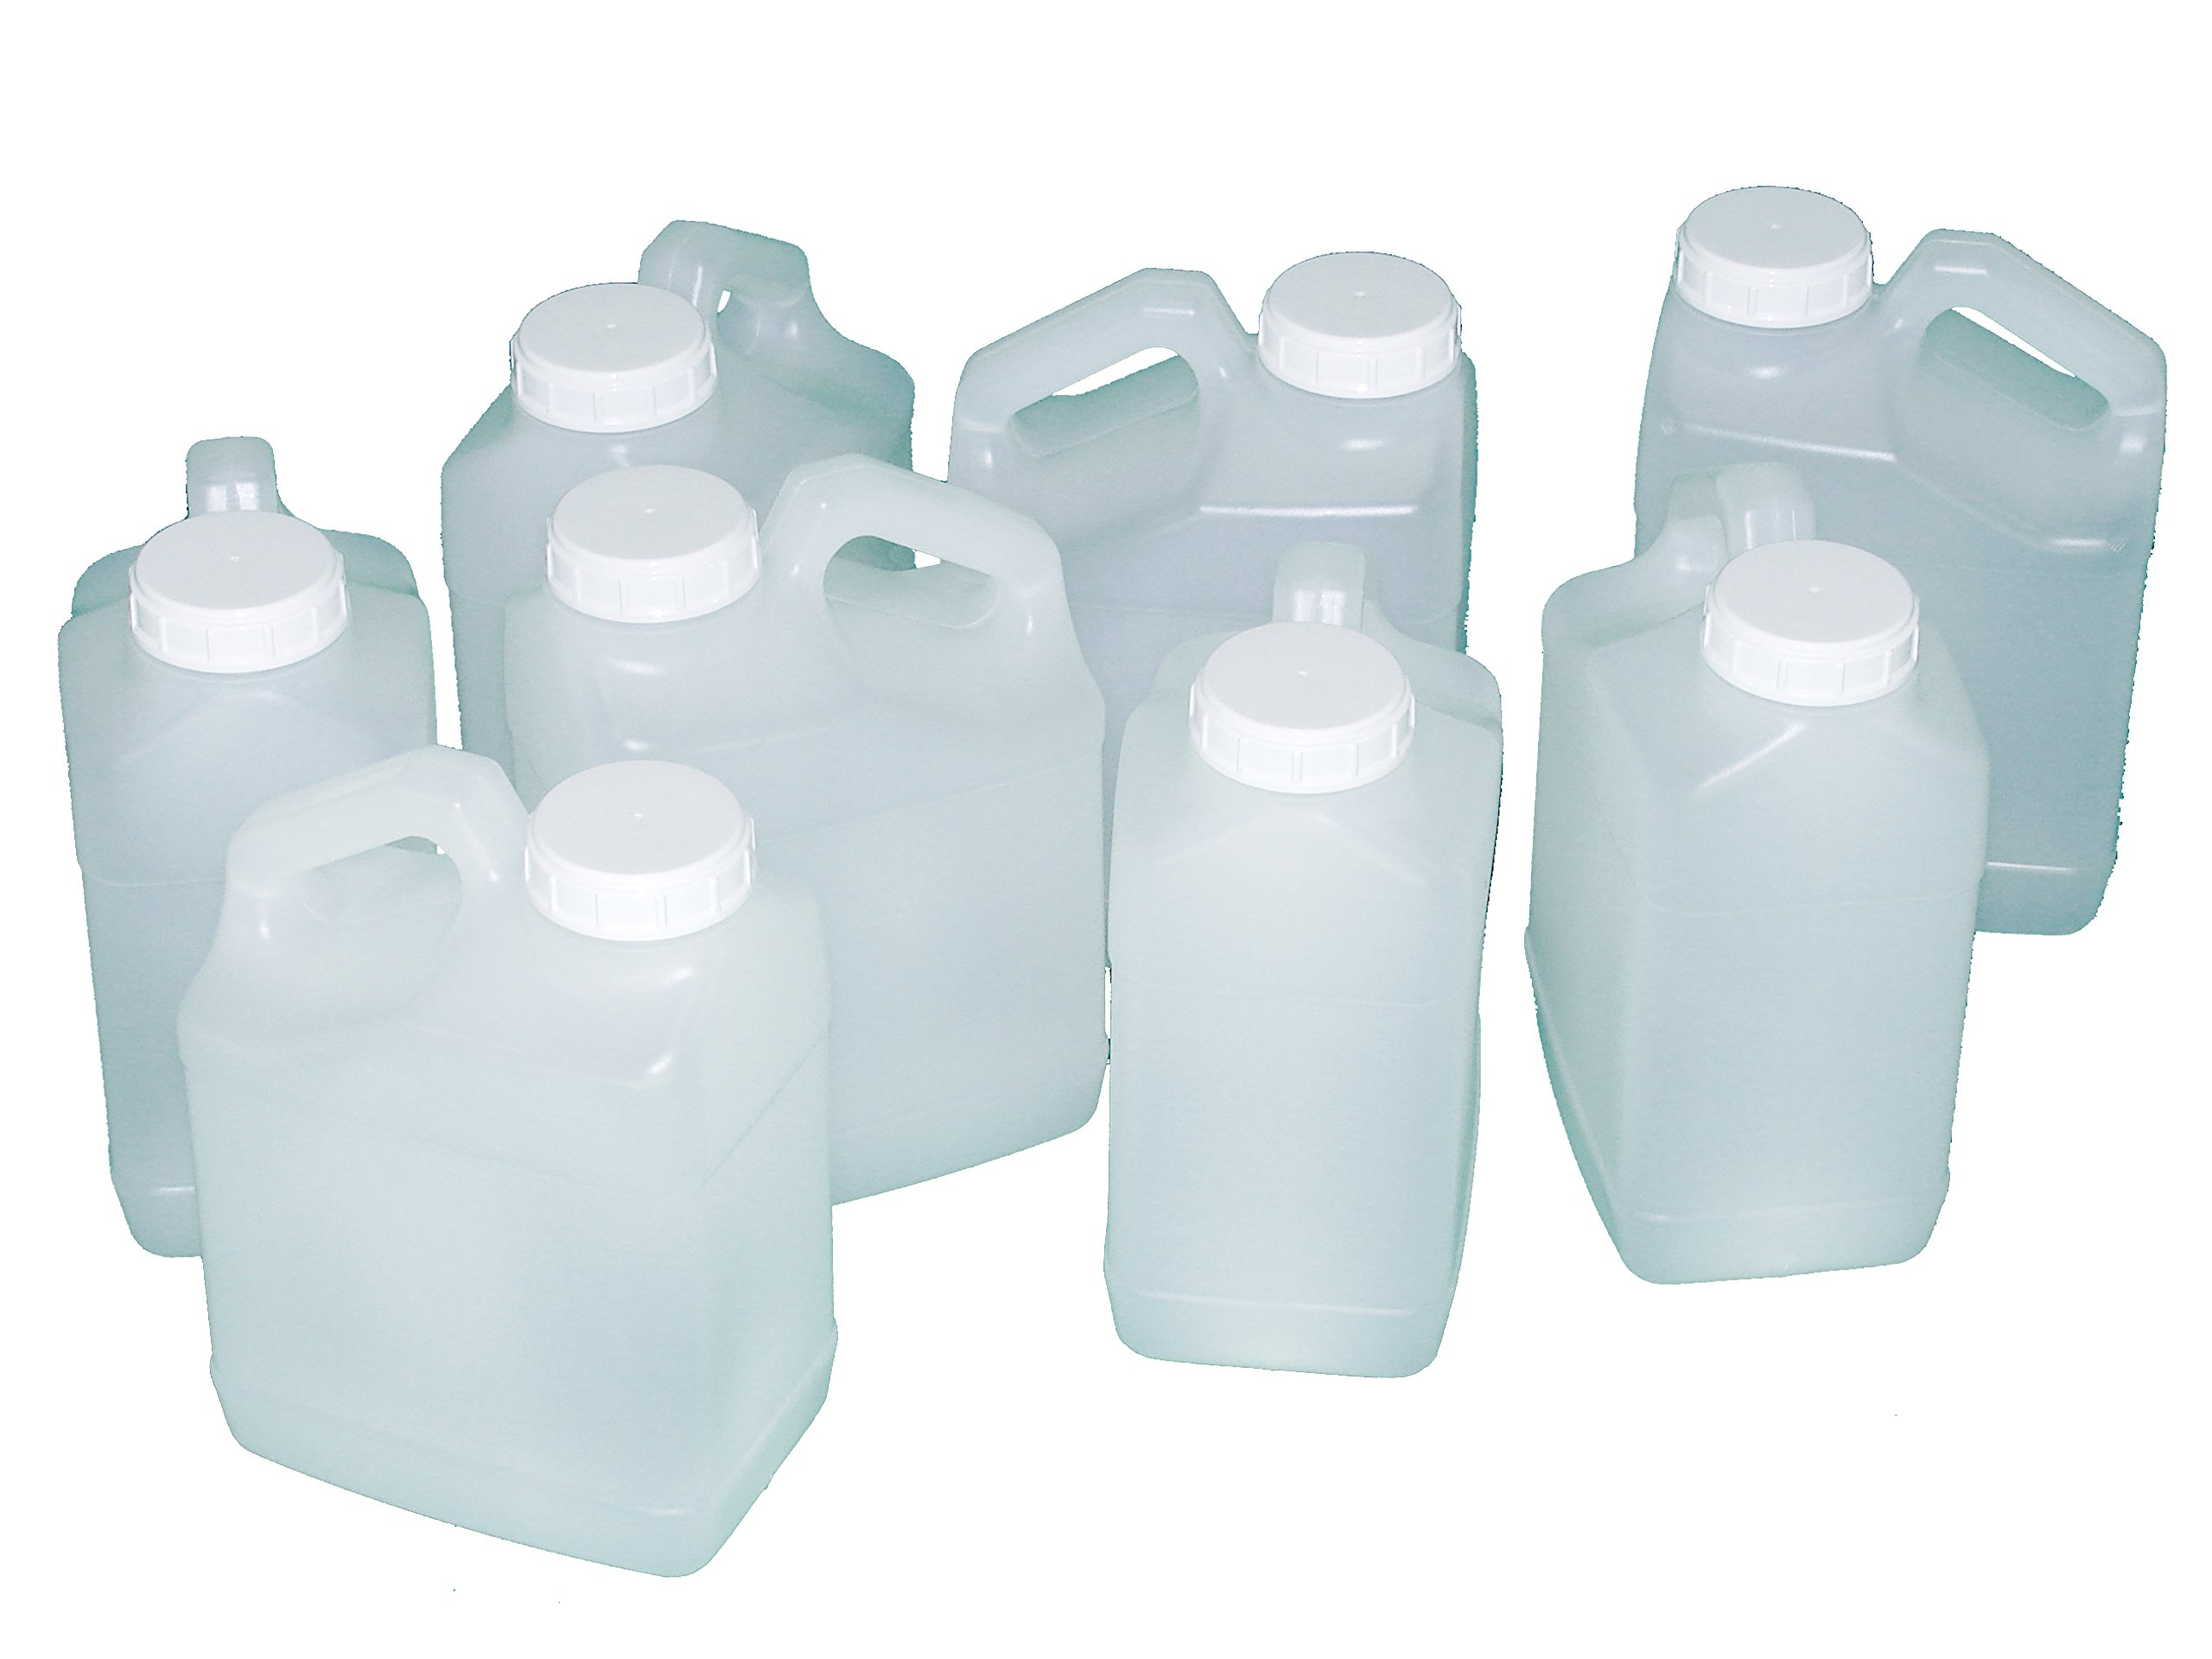 Jug, 1 Gallon, Wide Mouth, F-Style, plastic, natural color, Pack of 8 by Priority Plastics